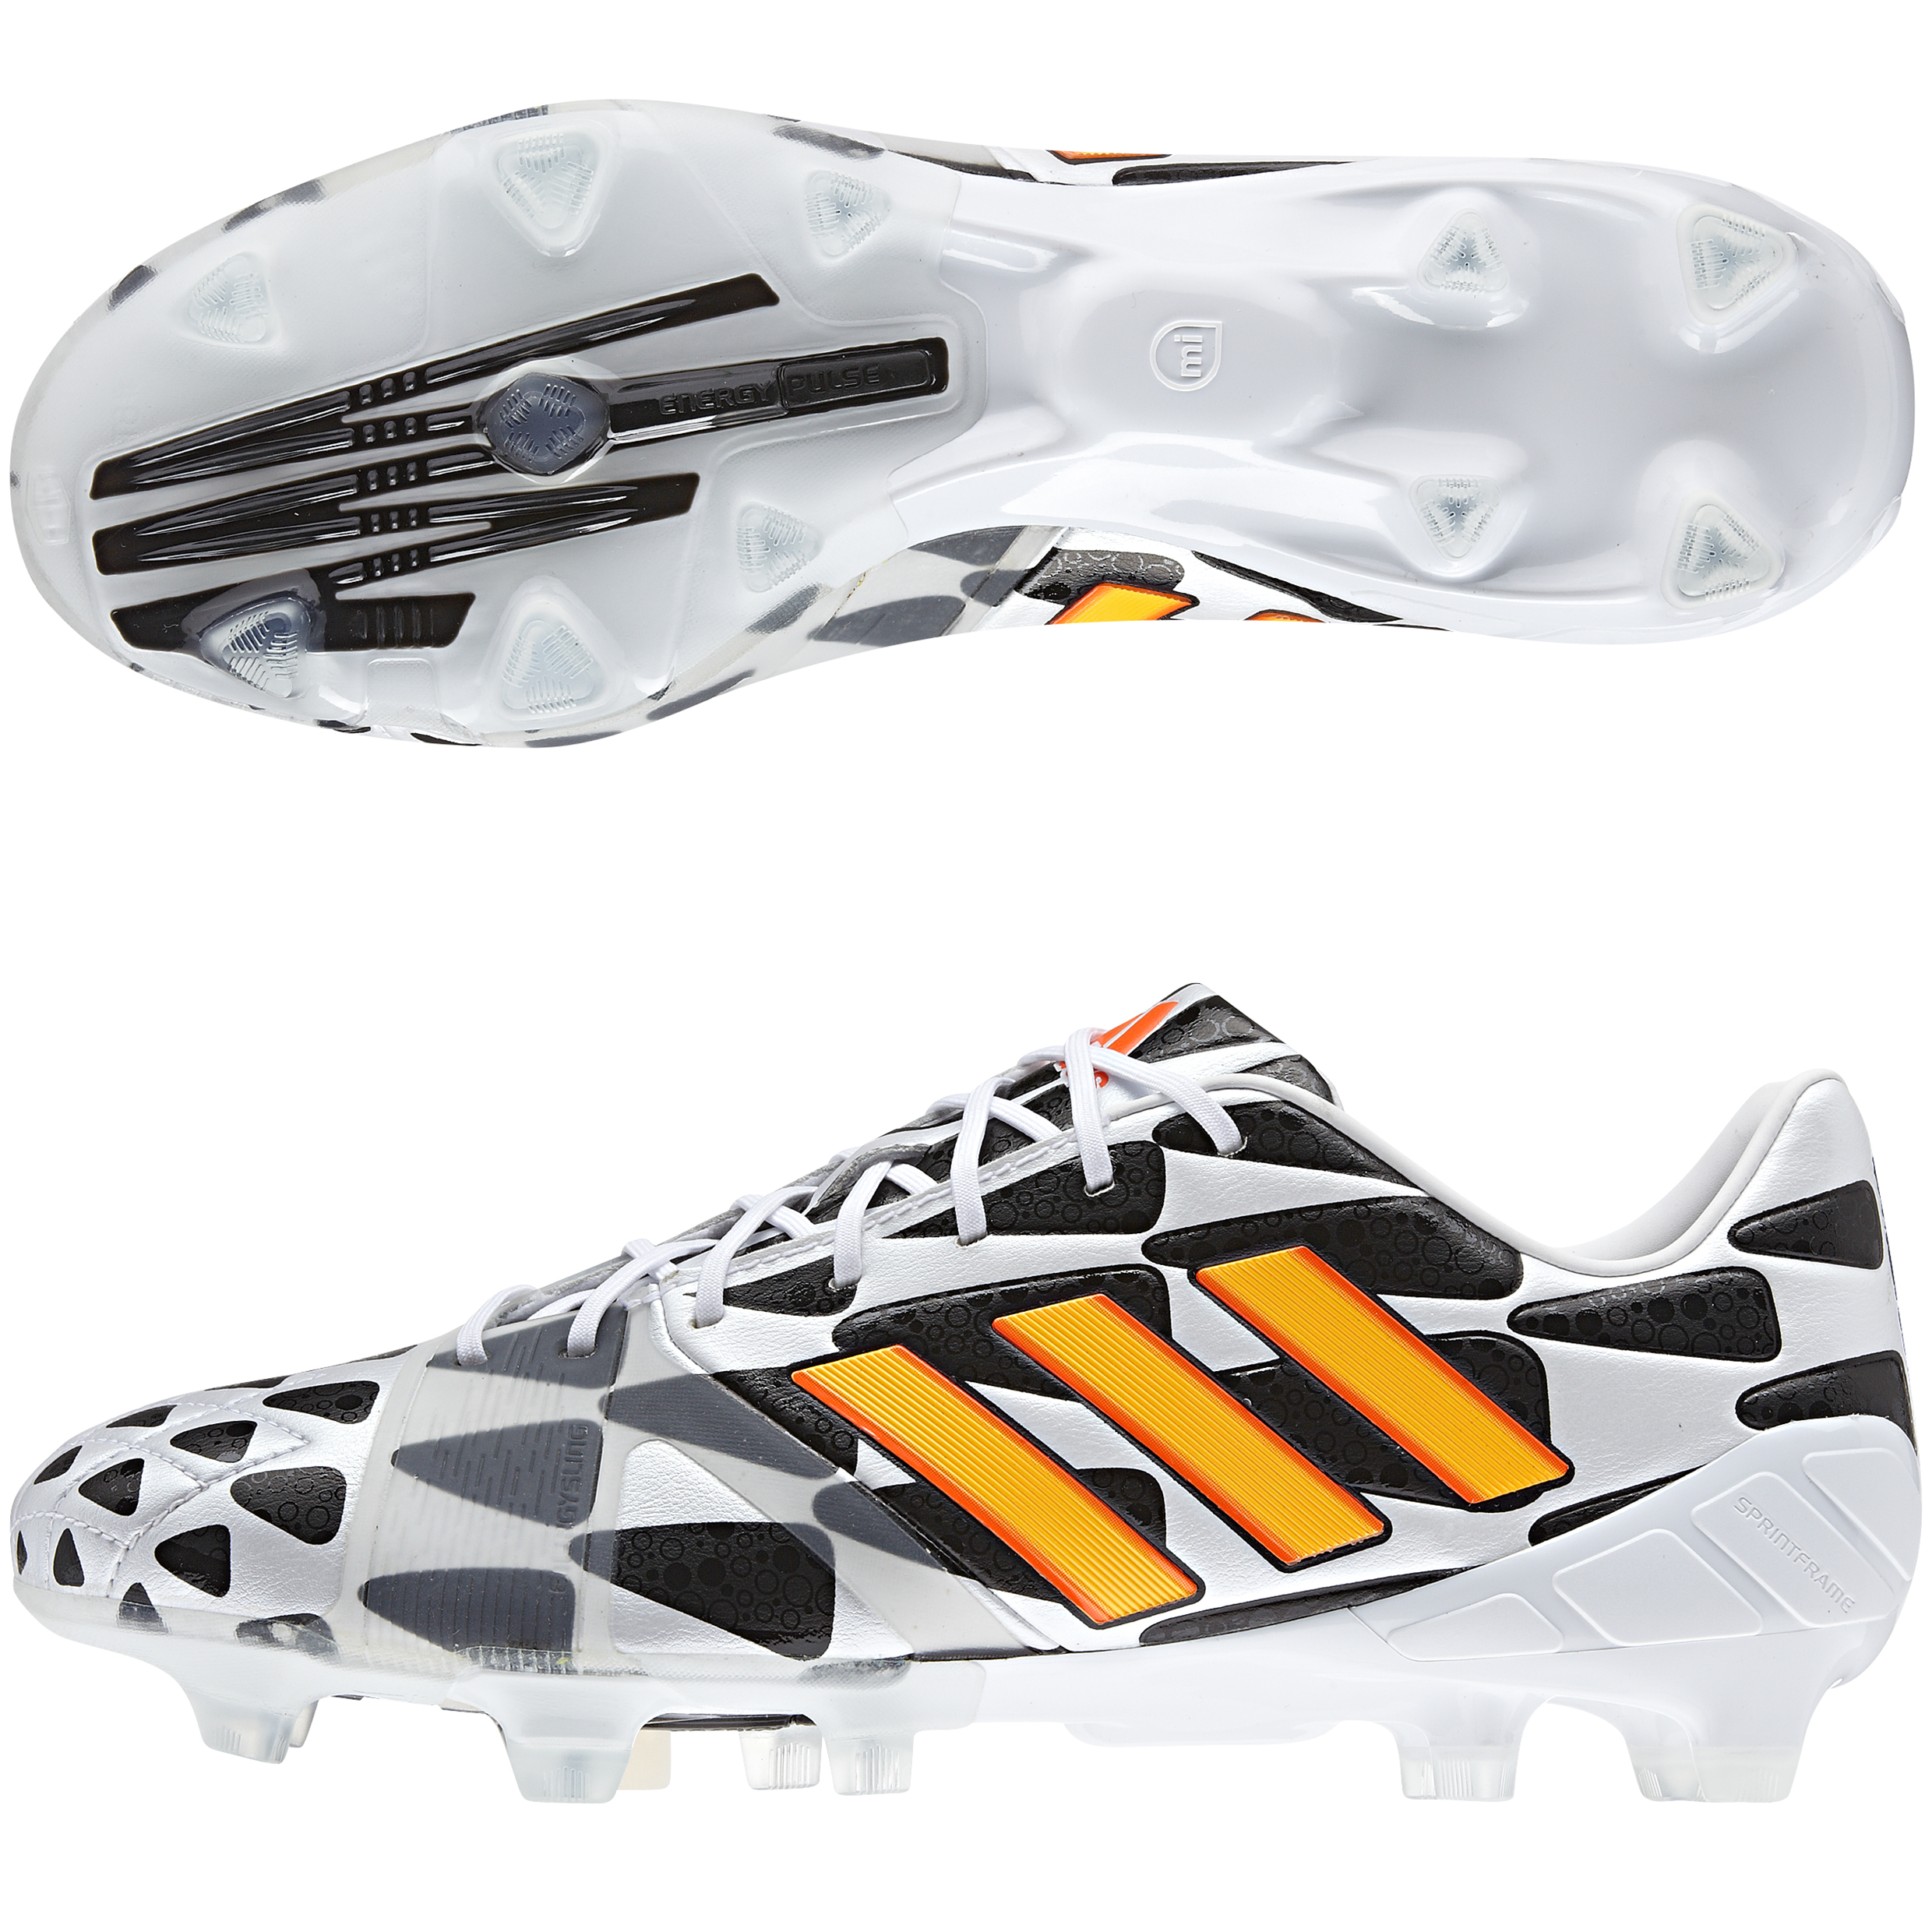 Adidas Nitrocharge 1.0 World Cup 2014 Firm Ground Football Boots White